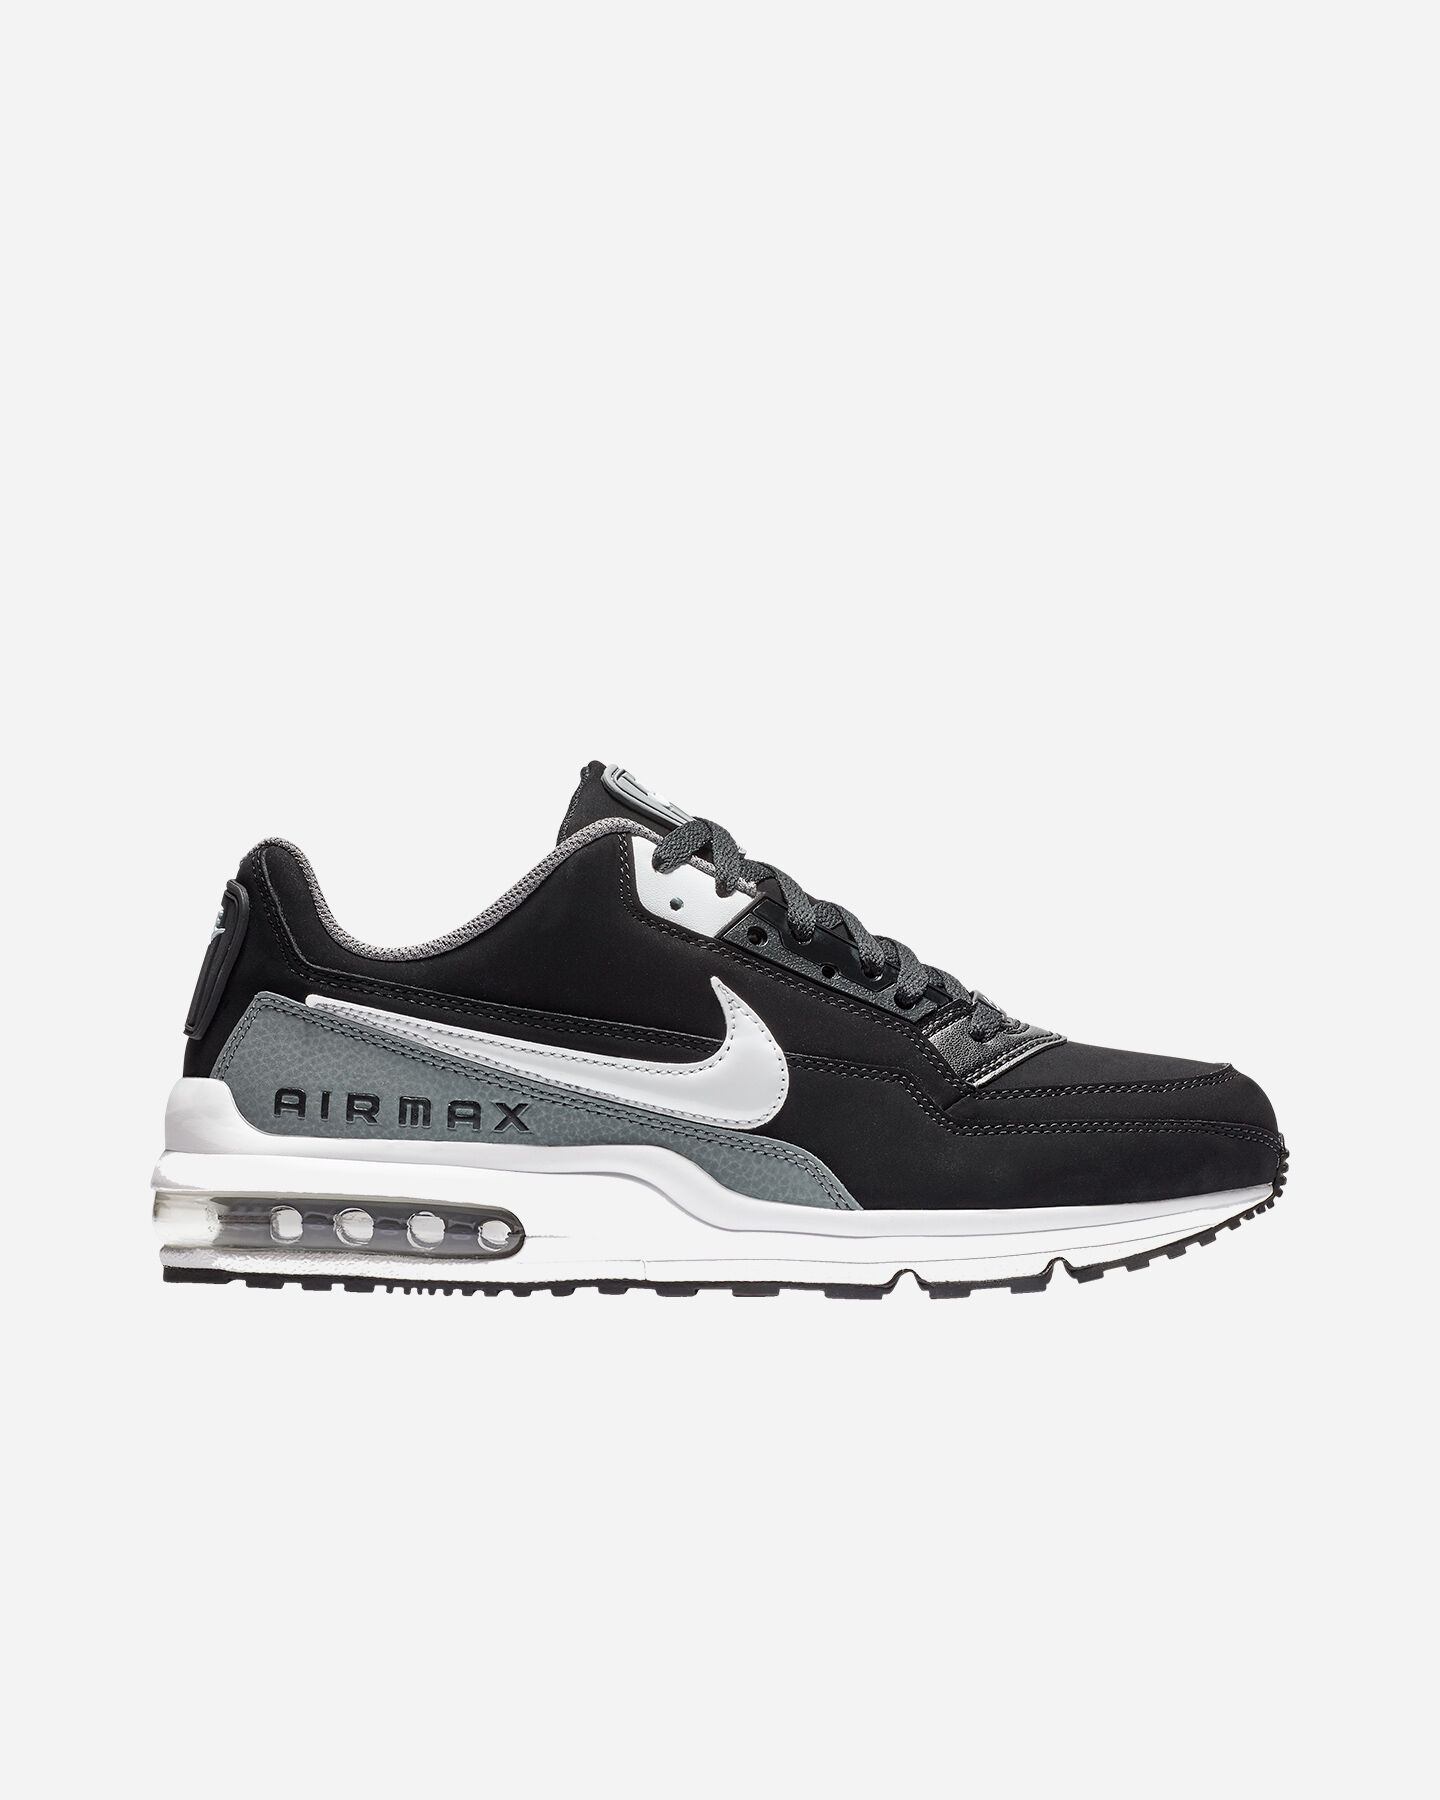 M Back 3 Uomo Nike To 90s Max Air The Ltd wpFqS67